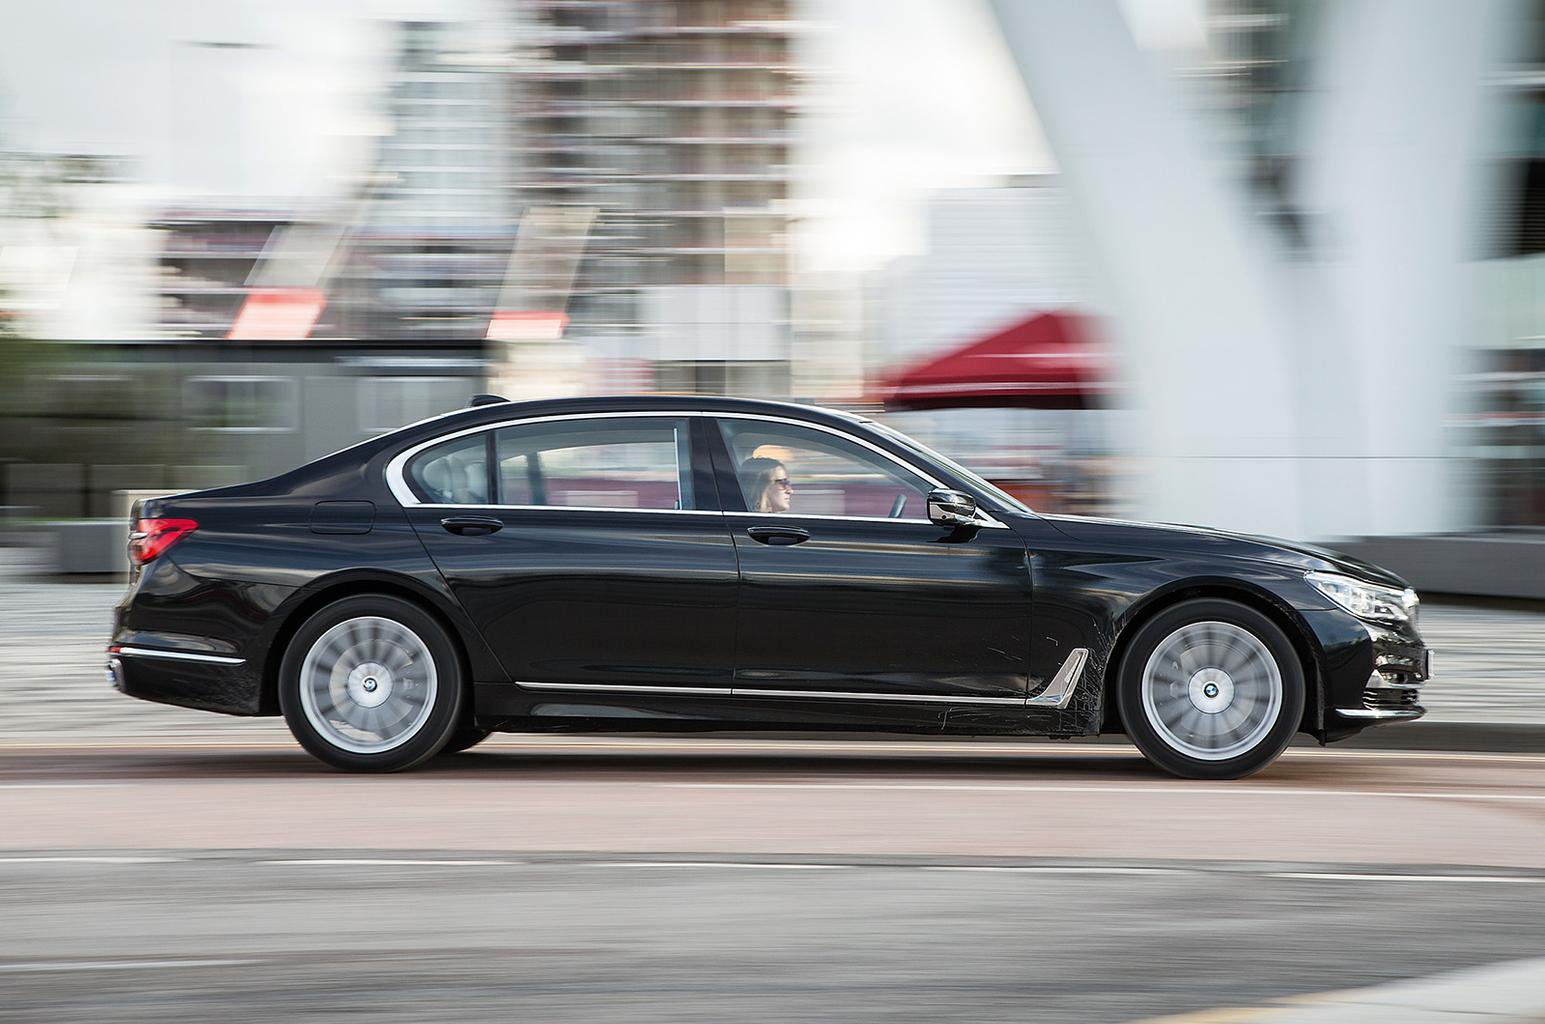 Used test: BMW 7 Series vs Mercedes-Benz S-Class